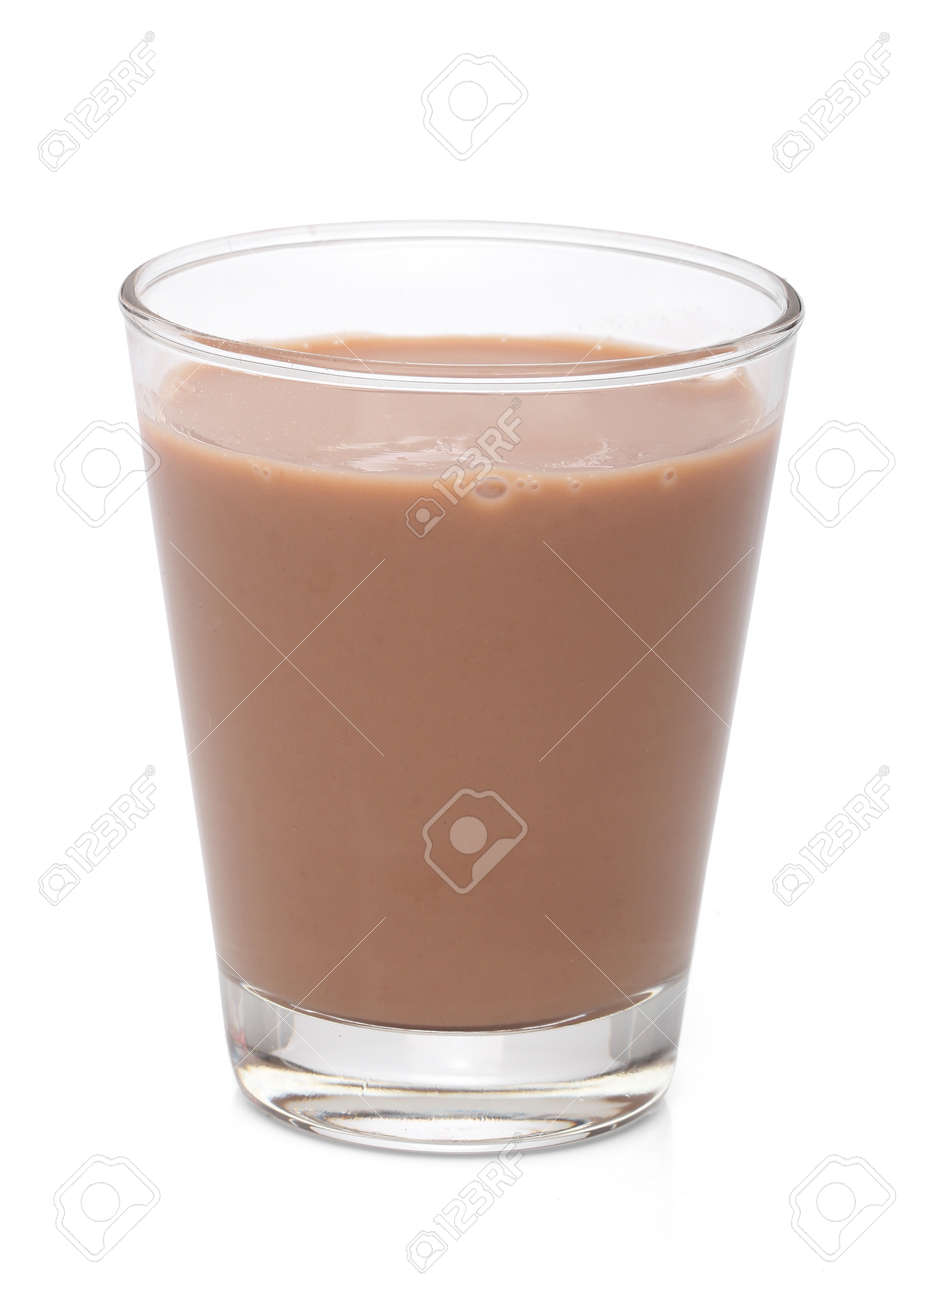 NY Department of Ed wants to ban chocolate milk from public schools